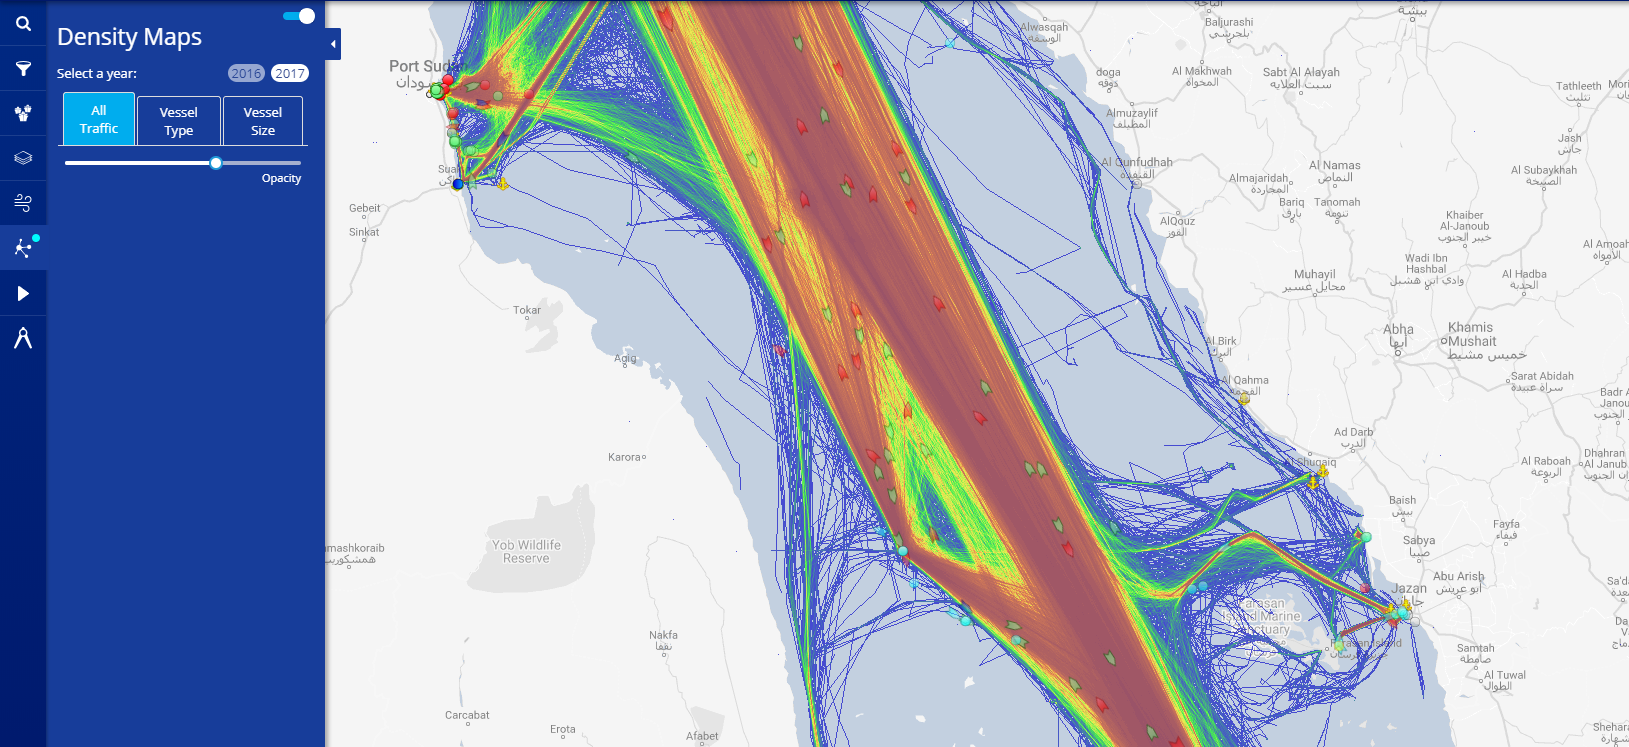 Display Density Maps on the Live Map – MarineTraffic Help on